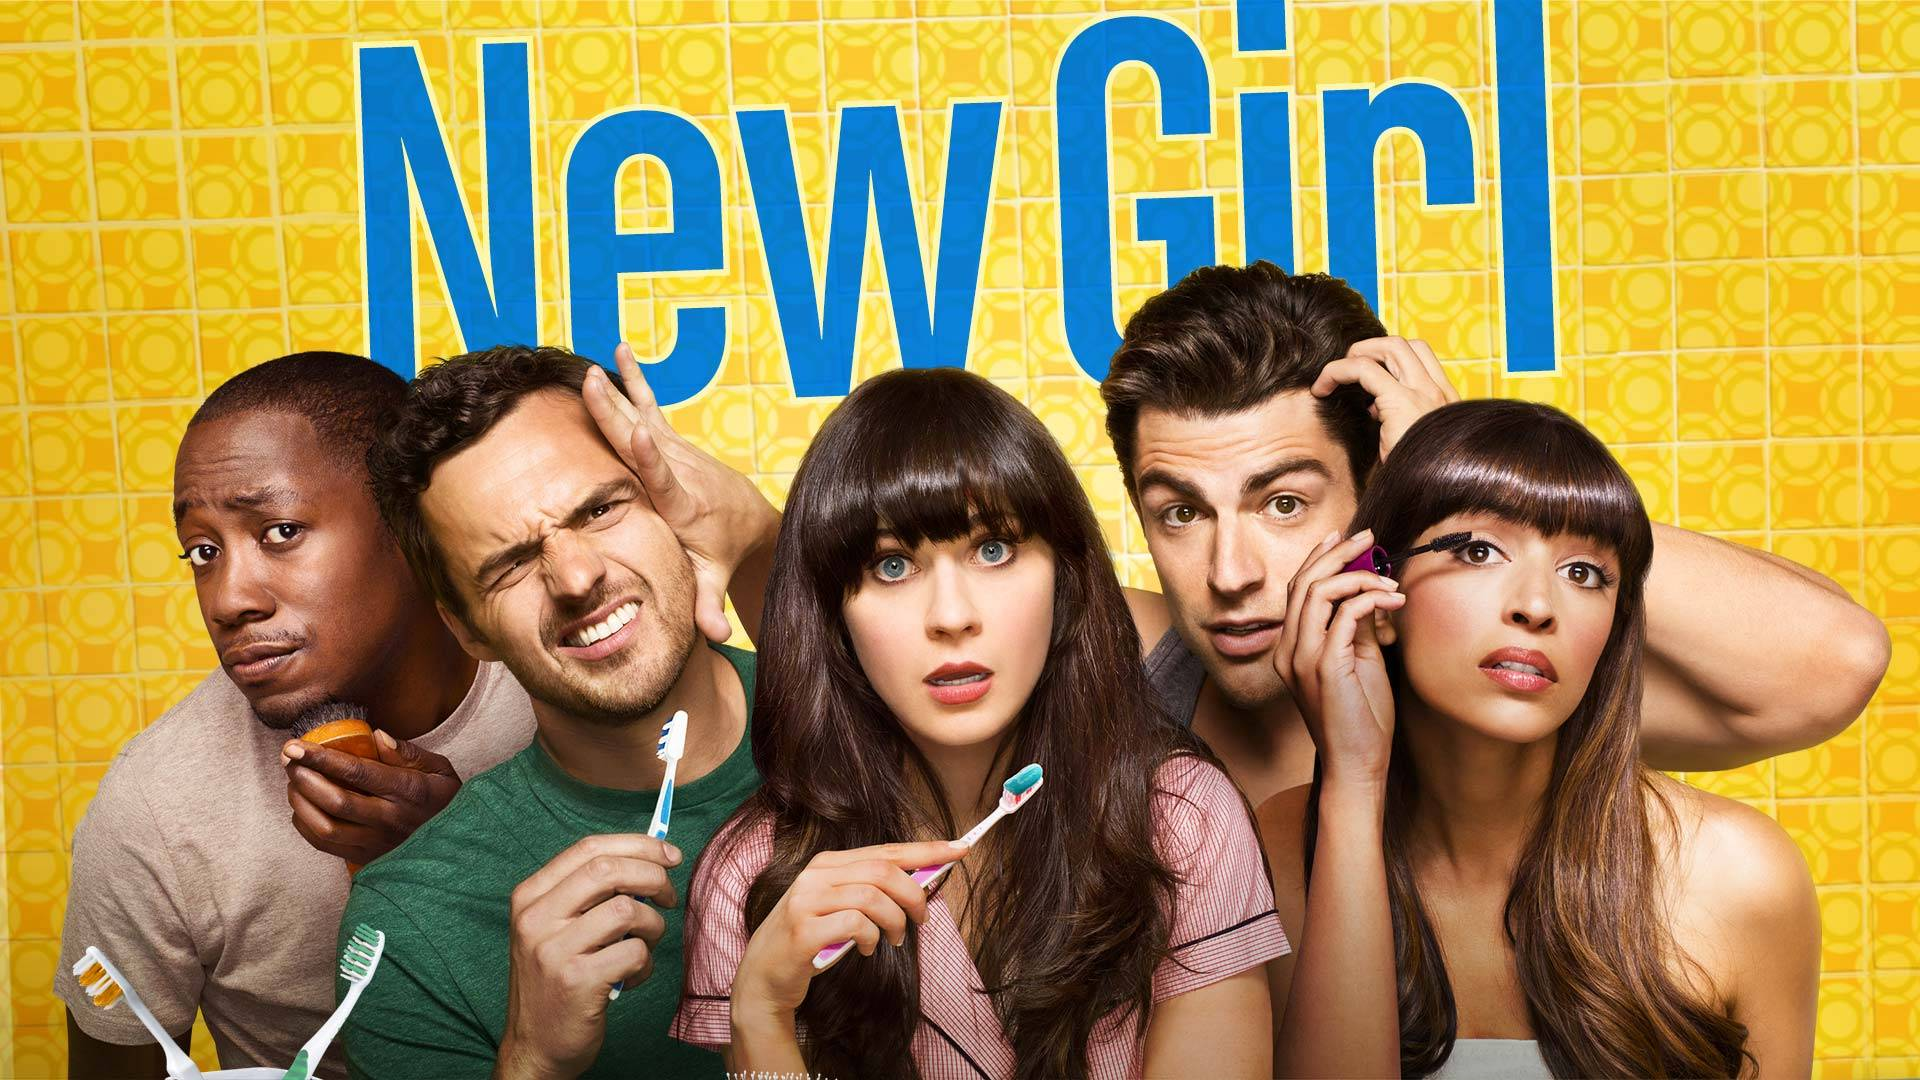 new girl show netflix wallpaper 215